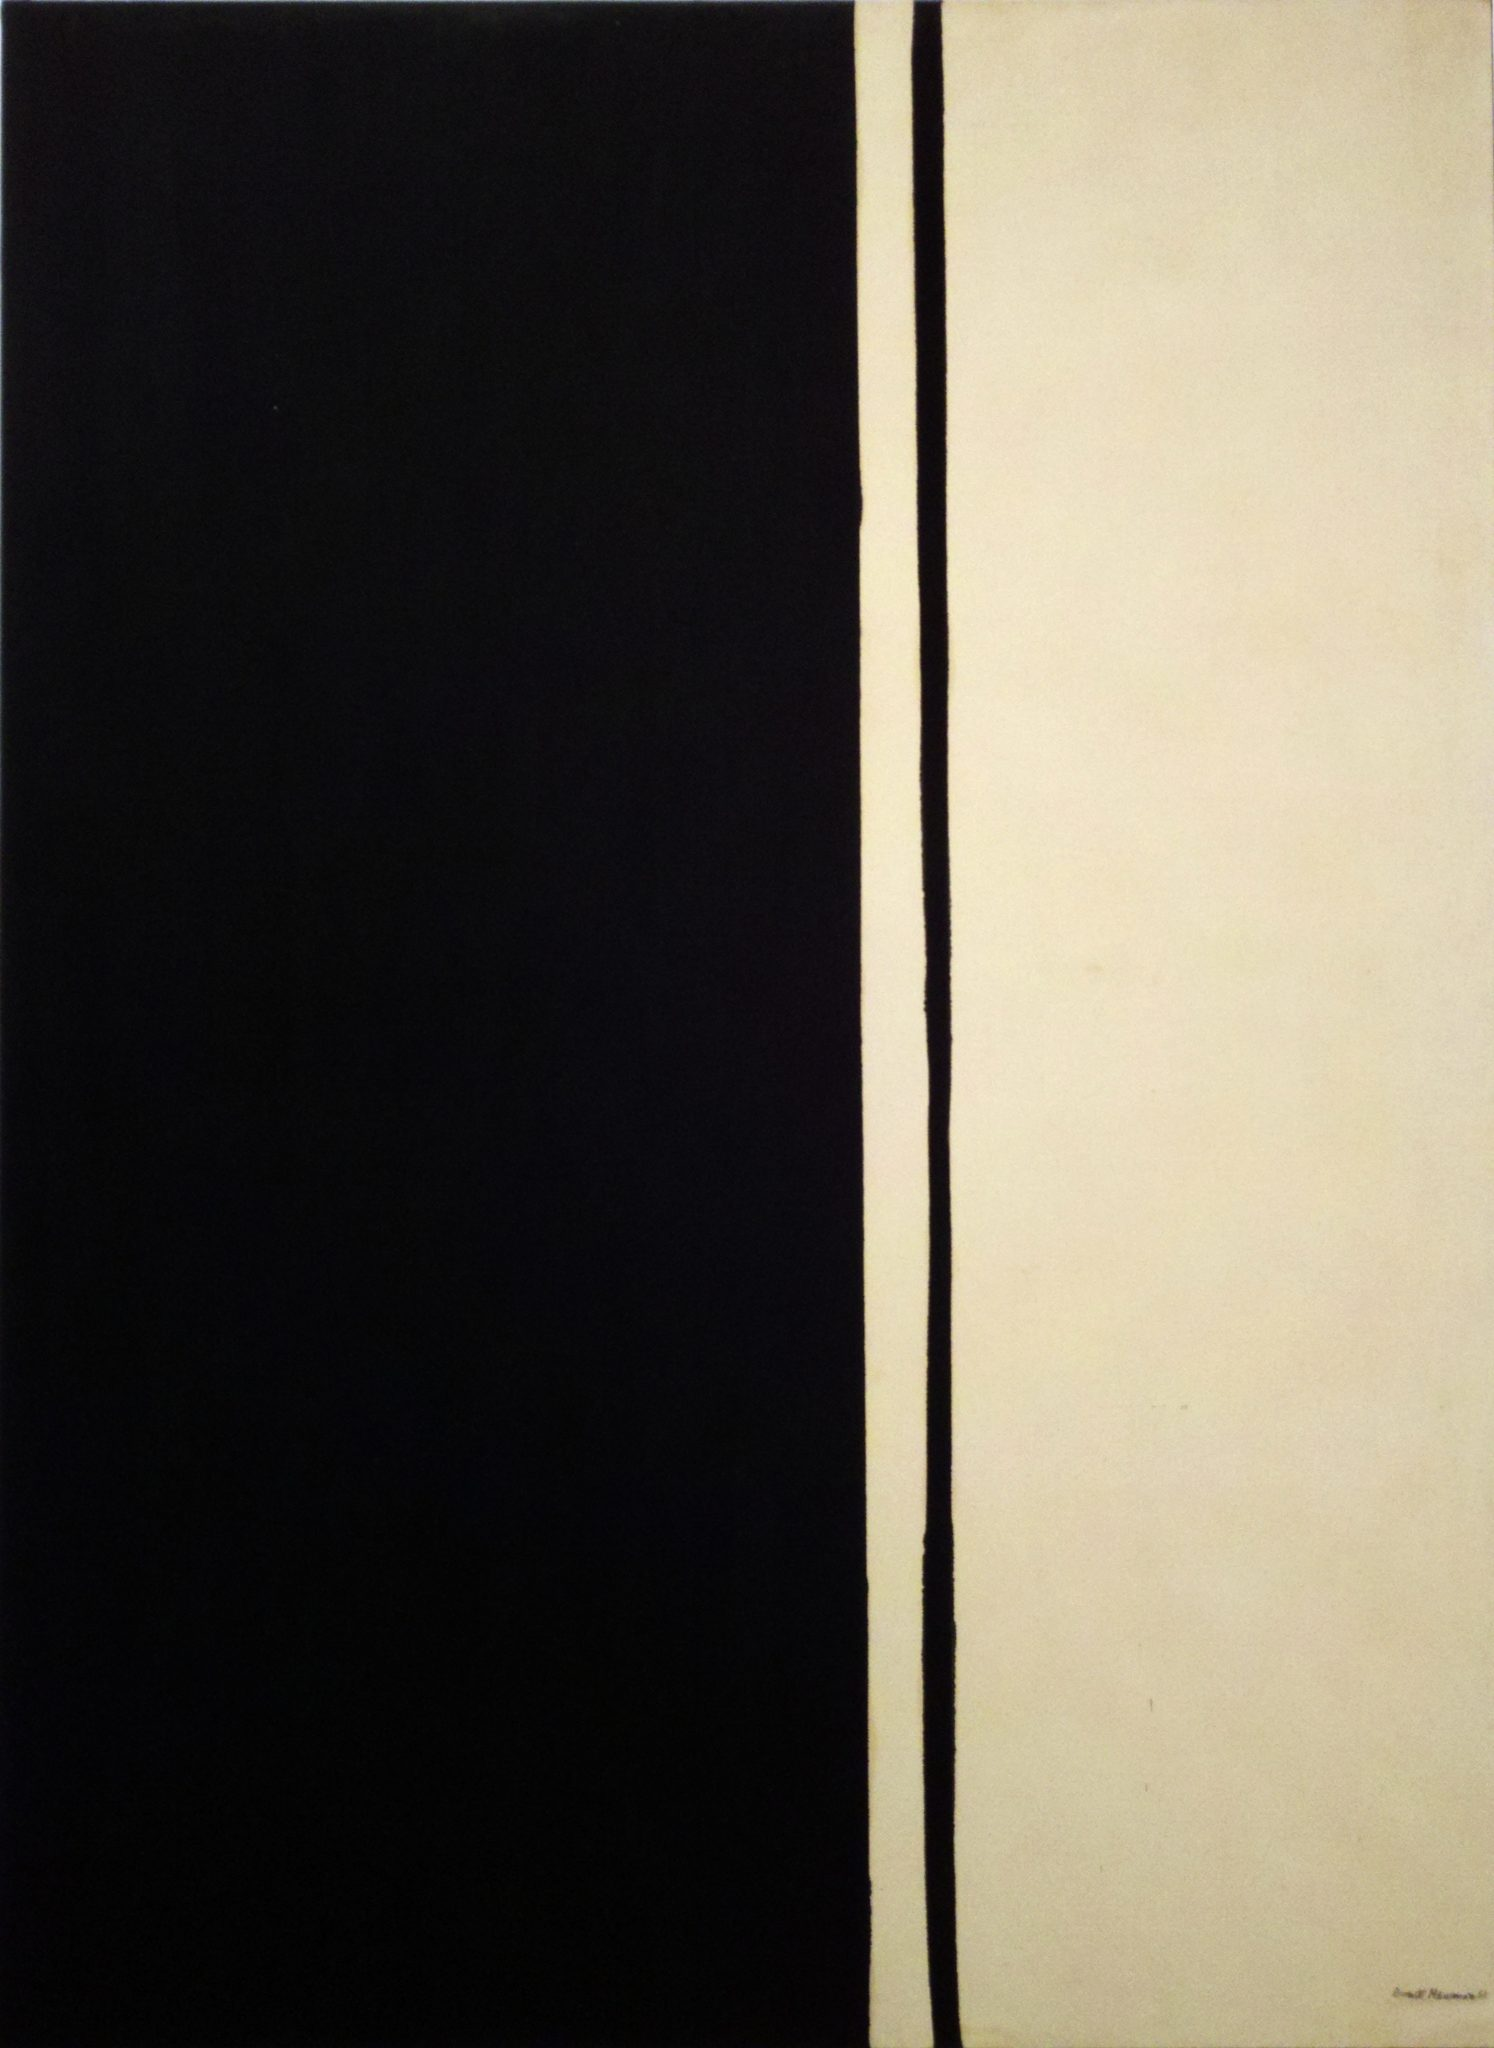 Barnett Newman (1905-1970) Black Fire I oil on canvas 114 x 84 in. (289.5 x 213.3 cm.) ESTIMATE Estimate on request PRICE REALIZED $84,165,000